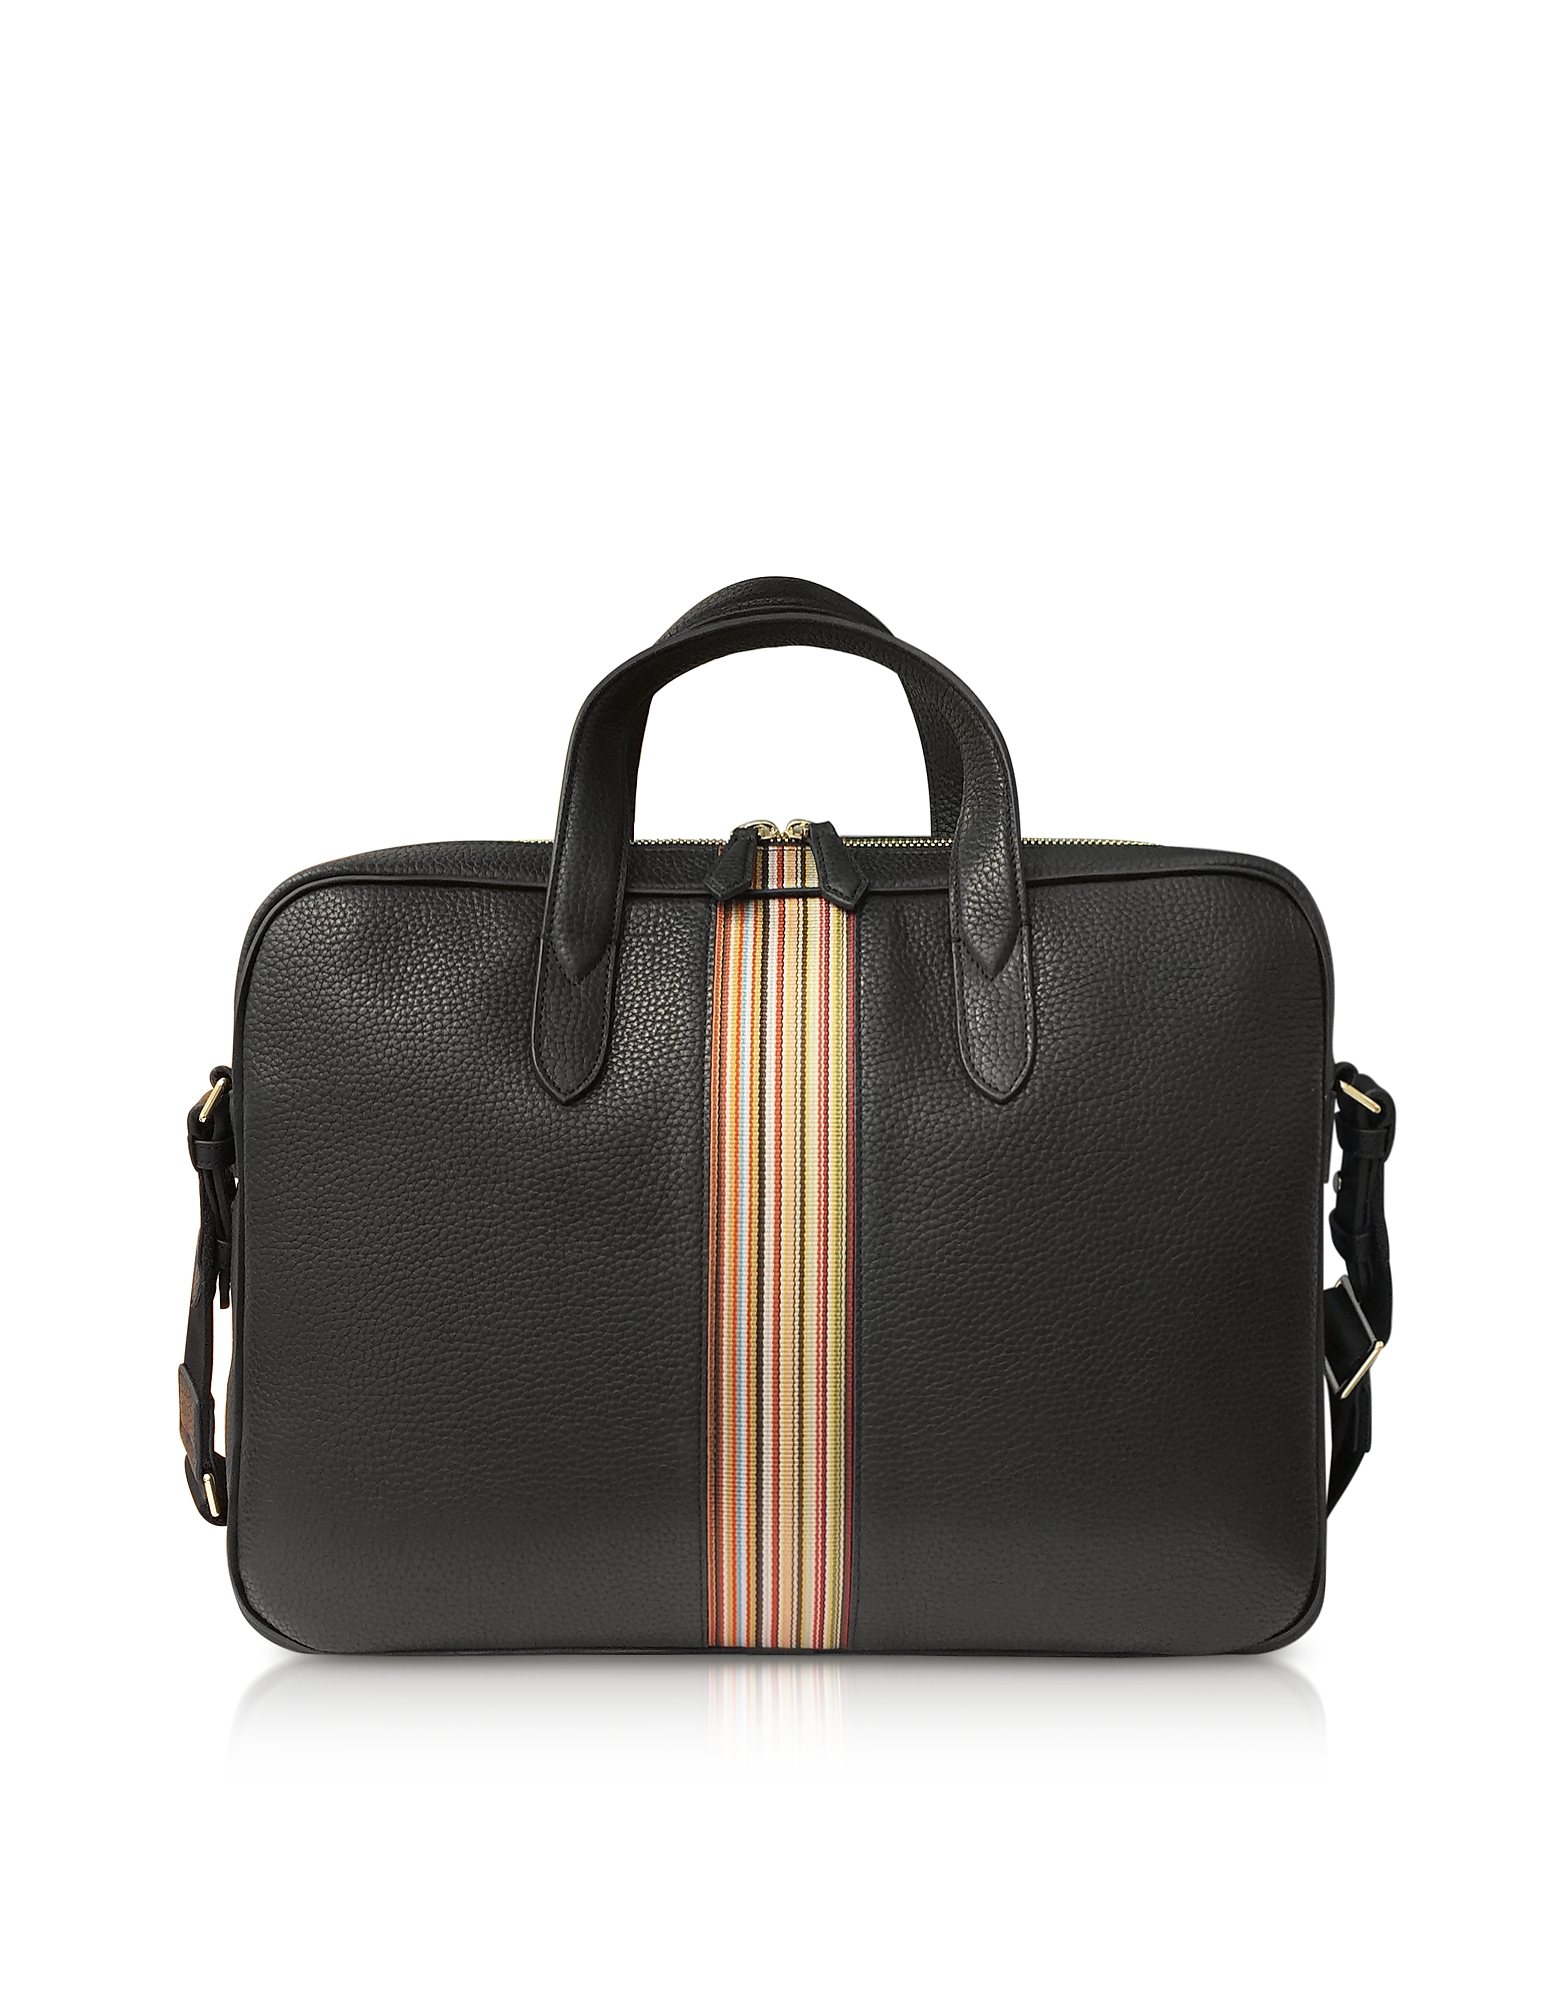 Paul Smith Briefcases, Black Leather New Stripe Print Portfolio/Men's Bag